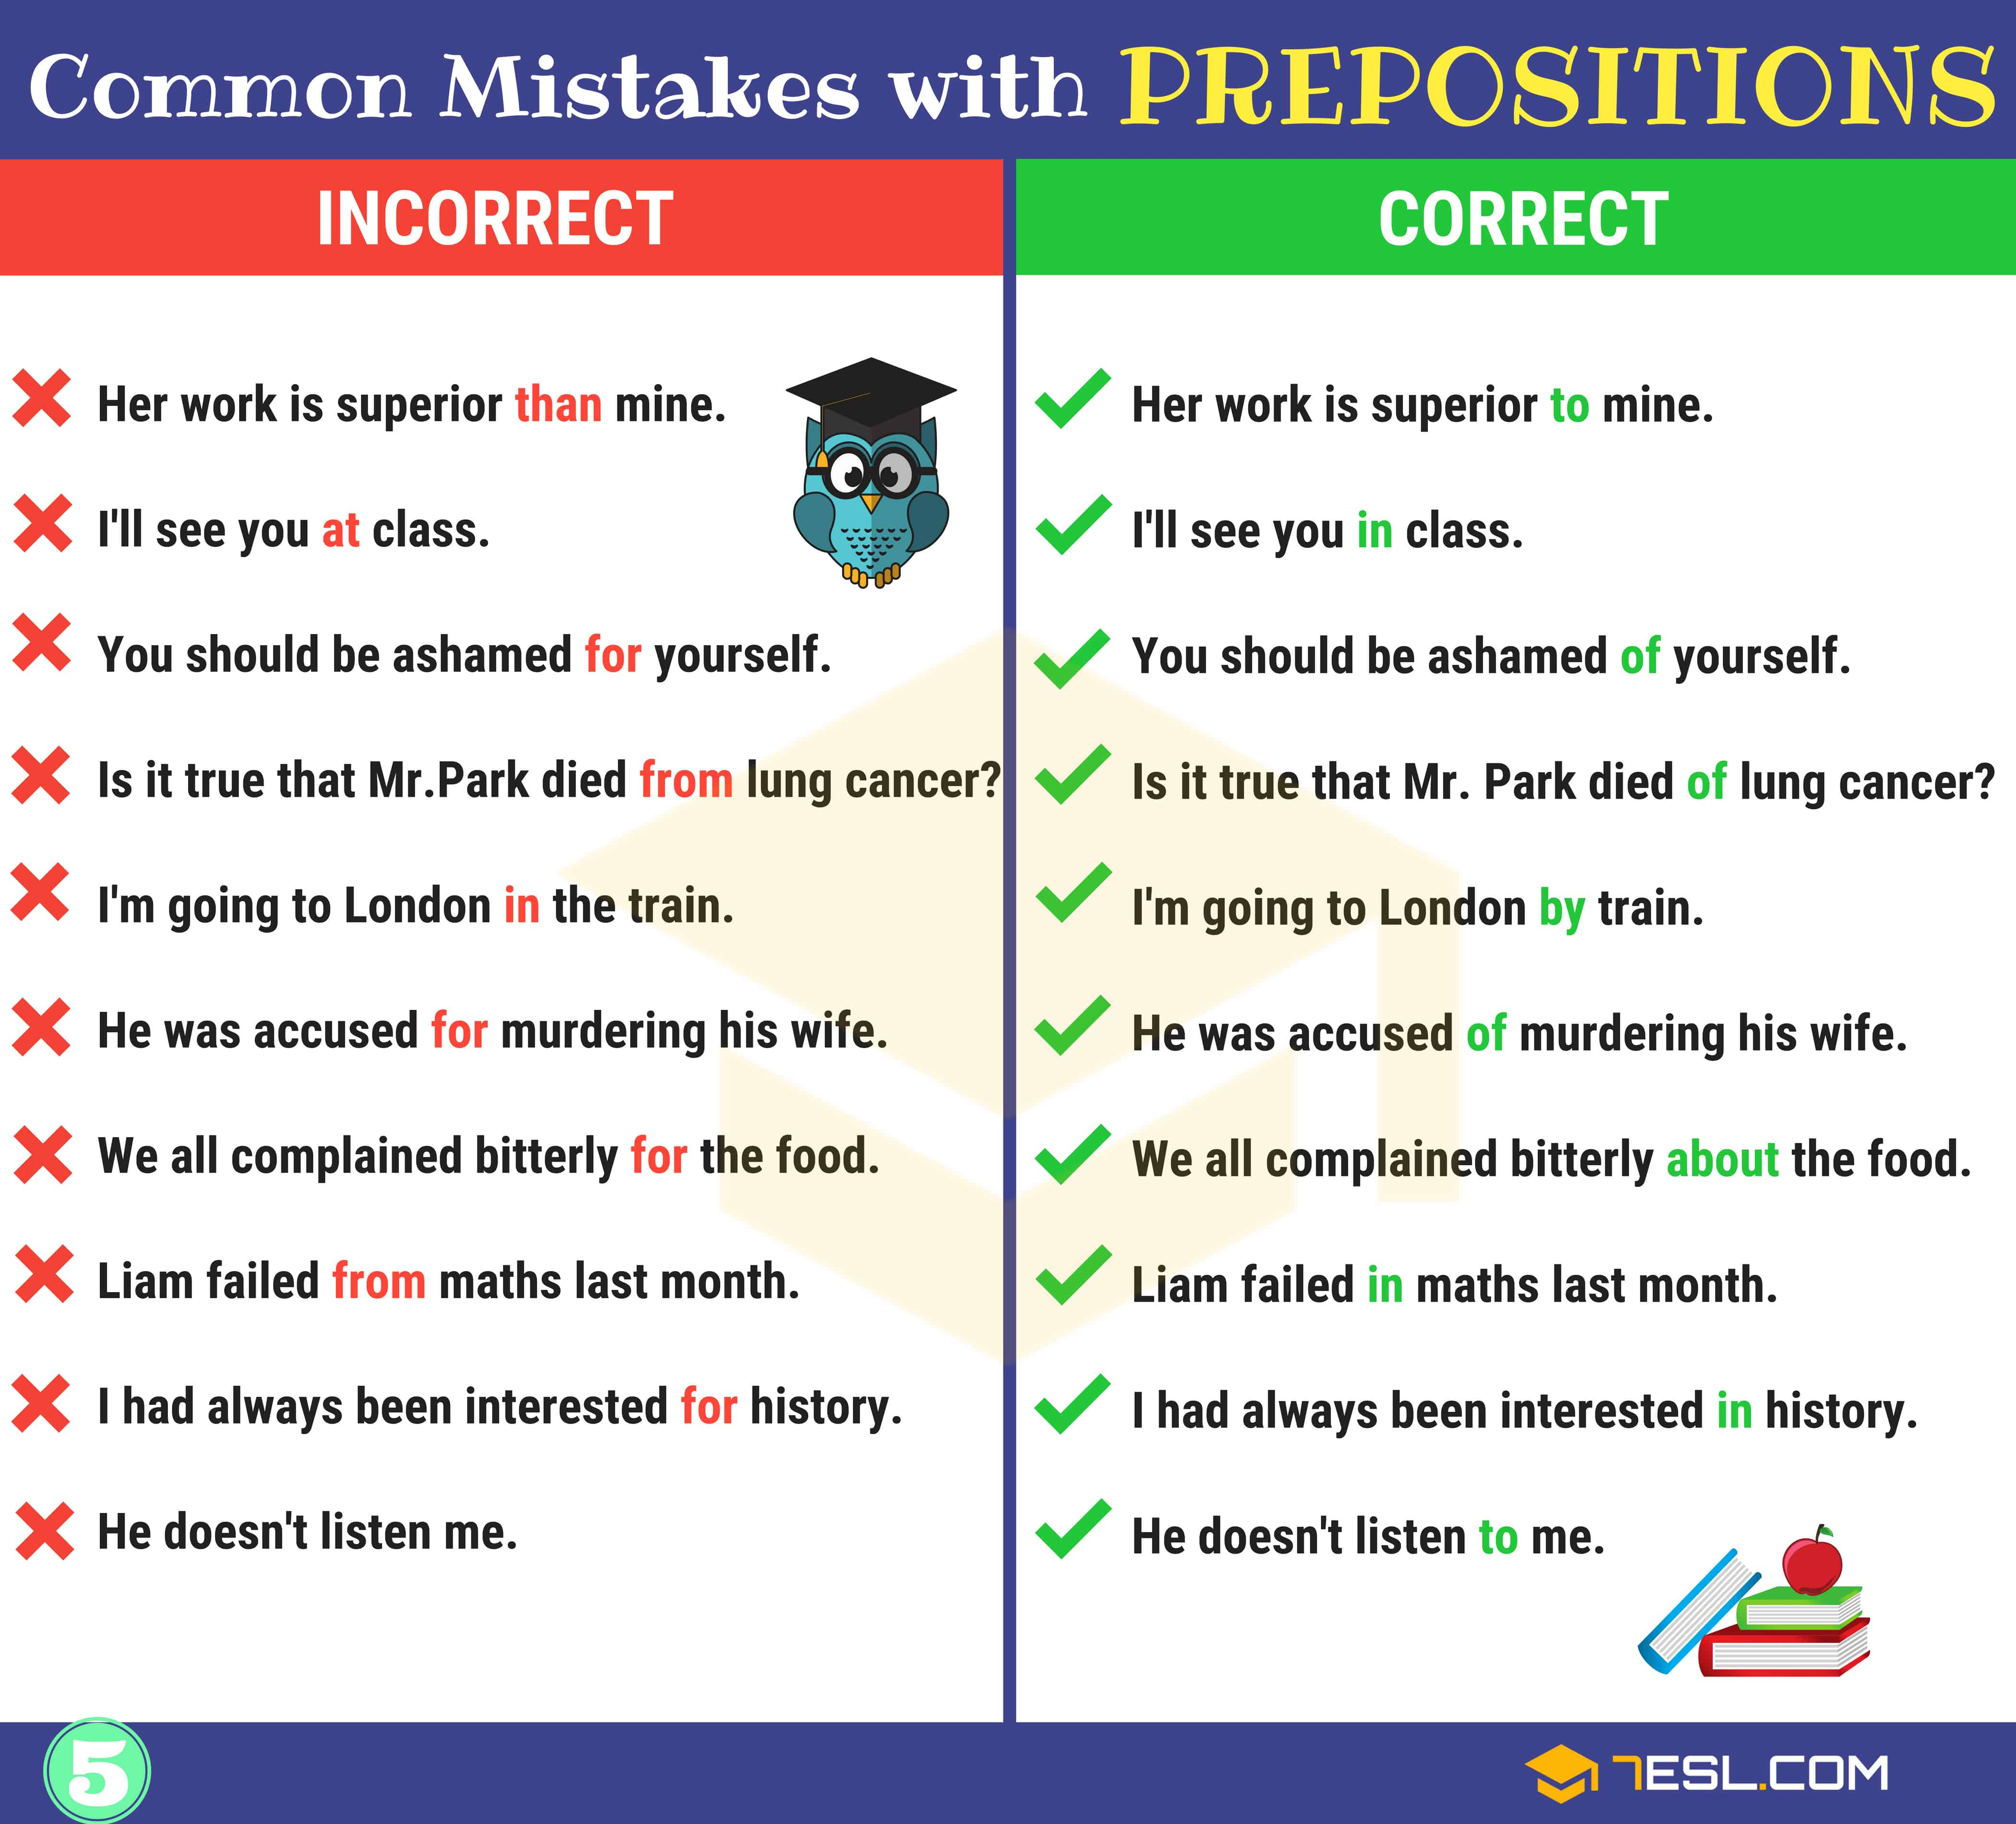 130+ Common MISTAKES With PREPOSITIONS And How To Avoid Them 6